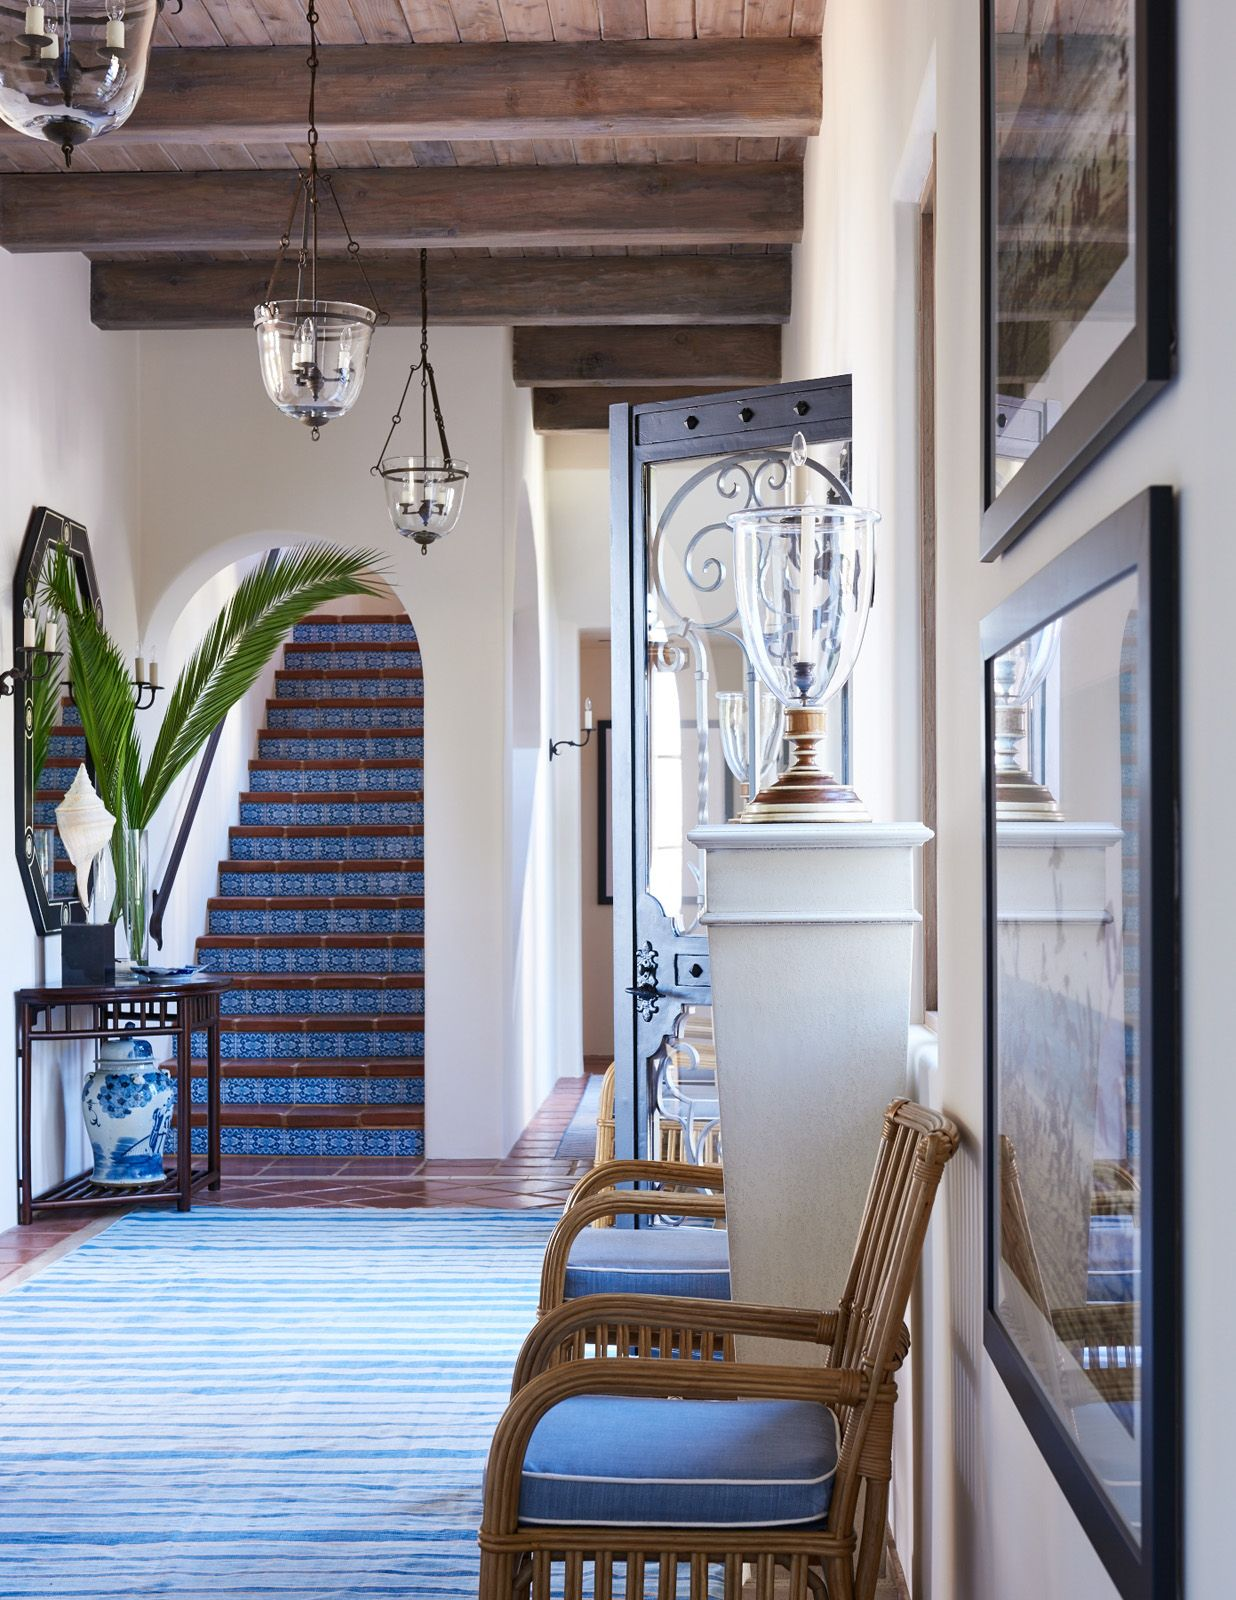 Coastal Entry With Stairs Covered In Tile To Match The Decor Hues